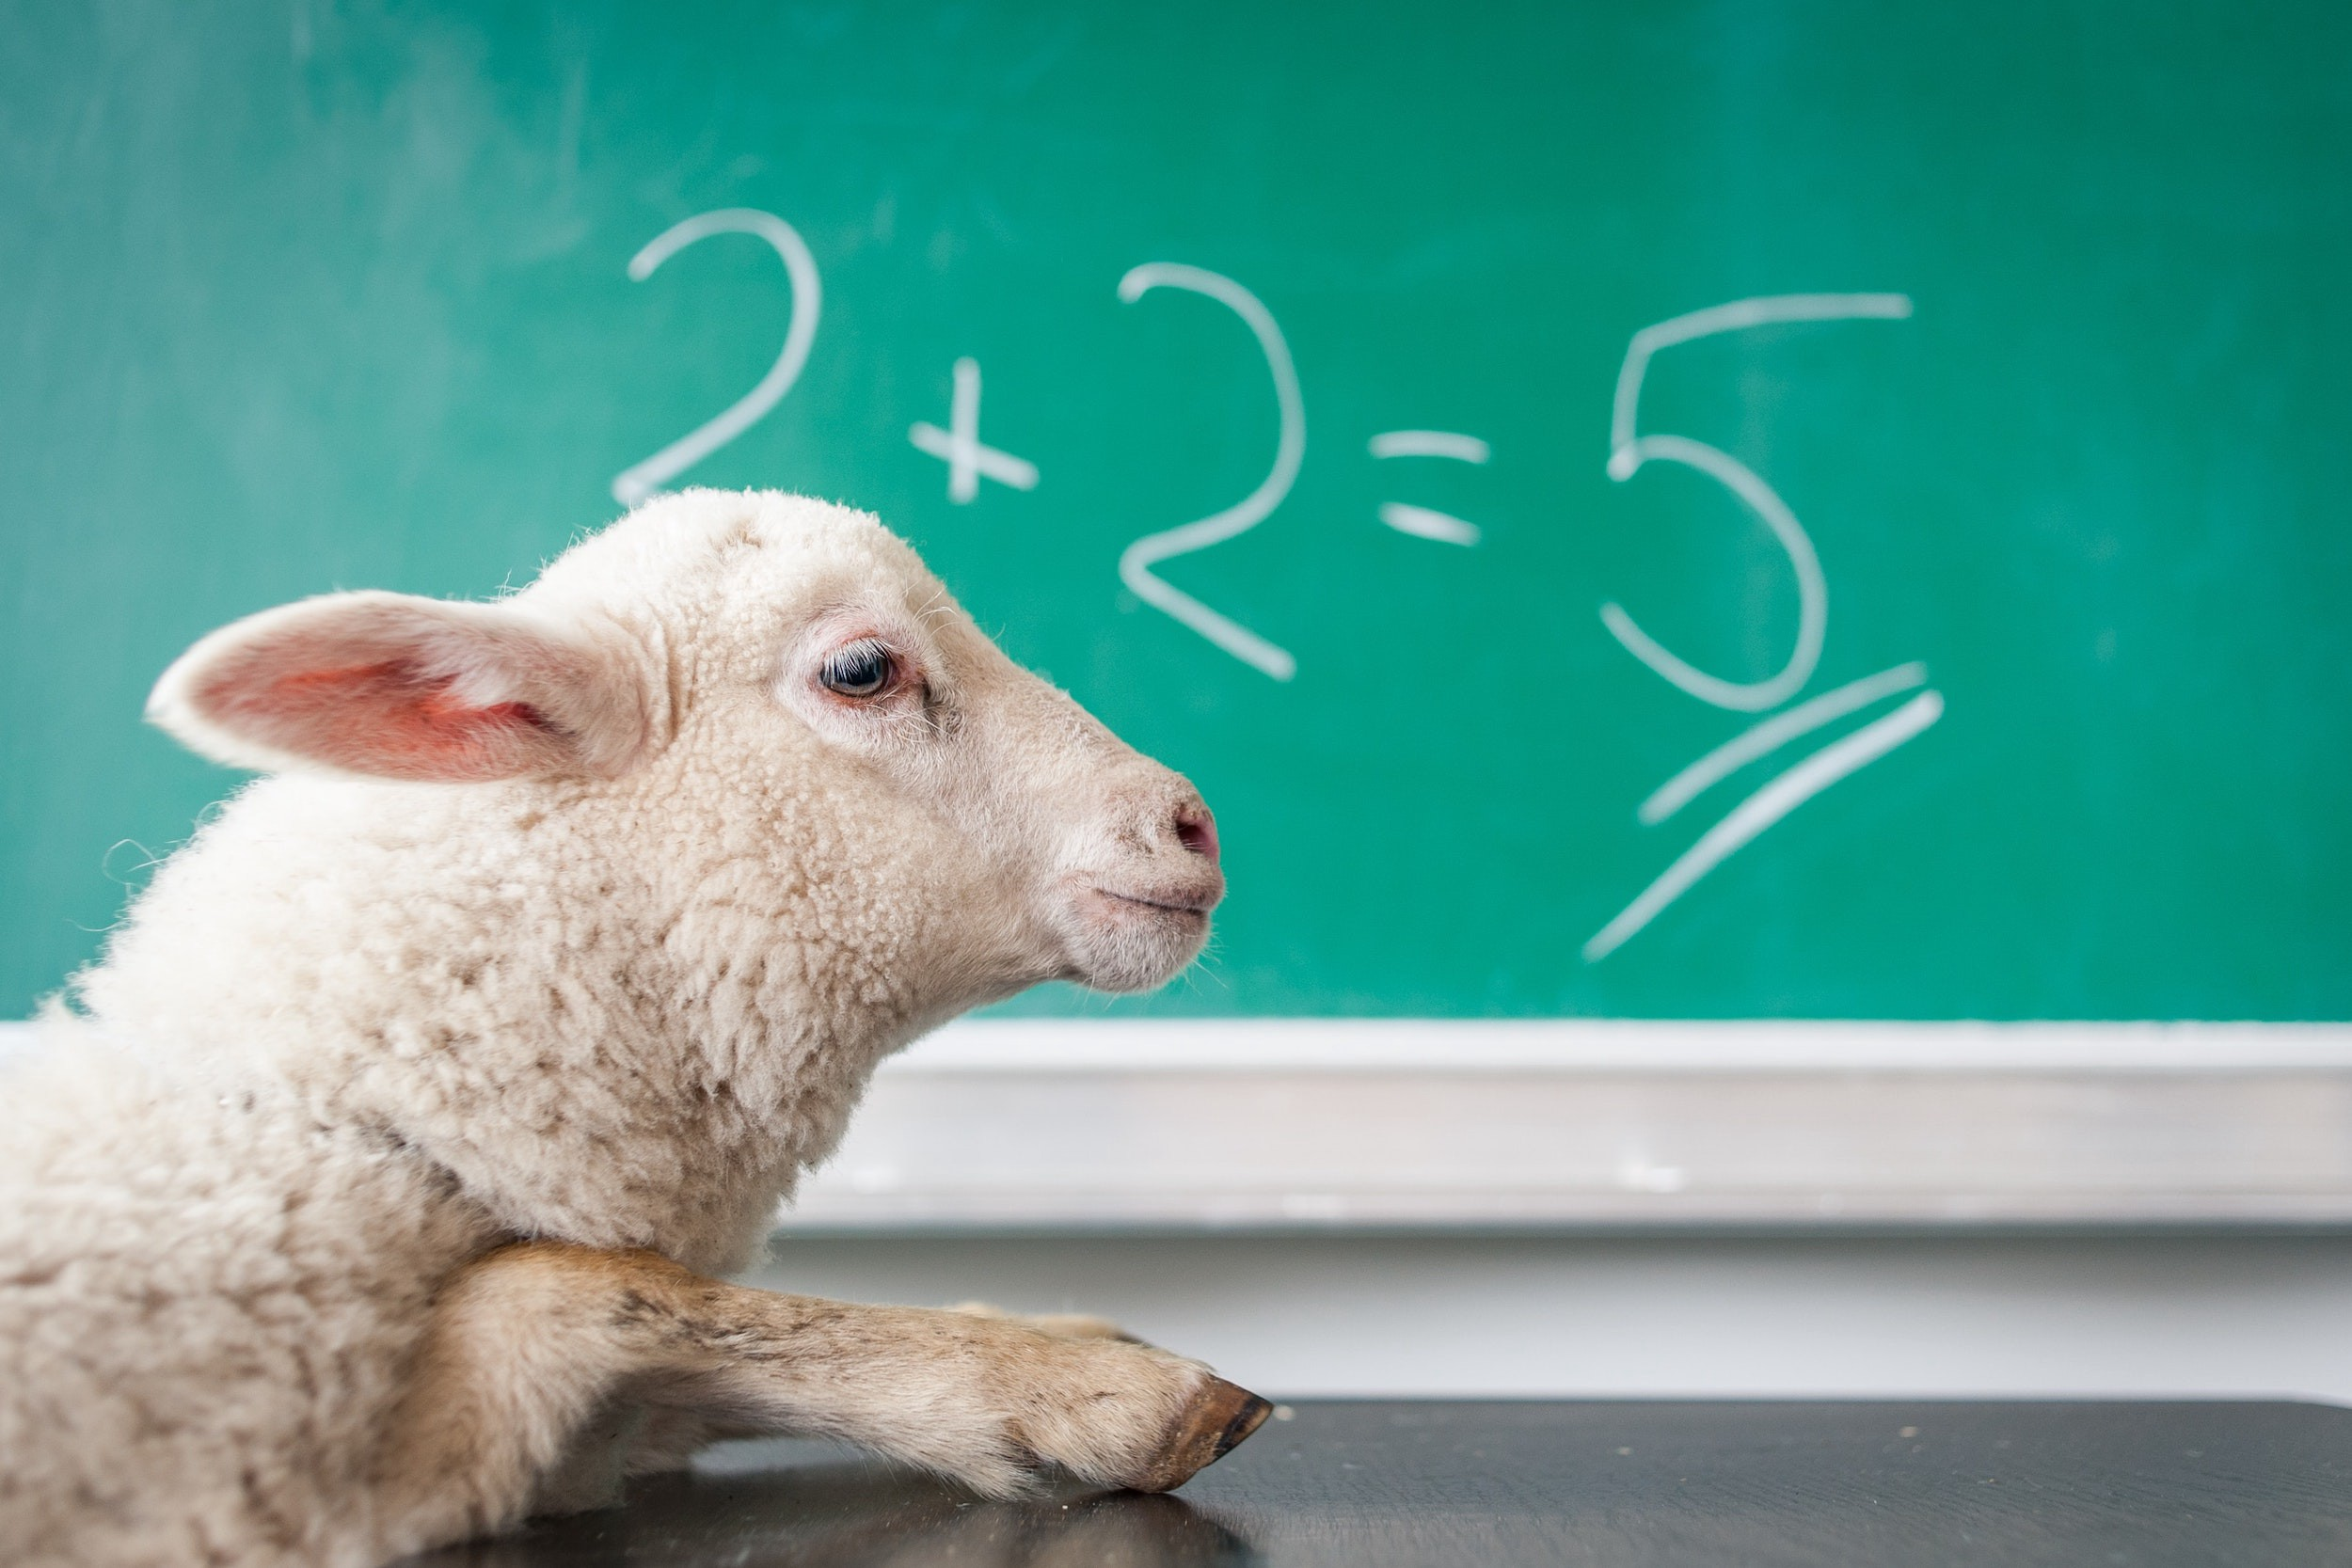 A sheep looks at a chalkboard with 2+2=5 written on it